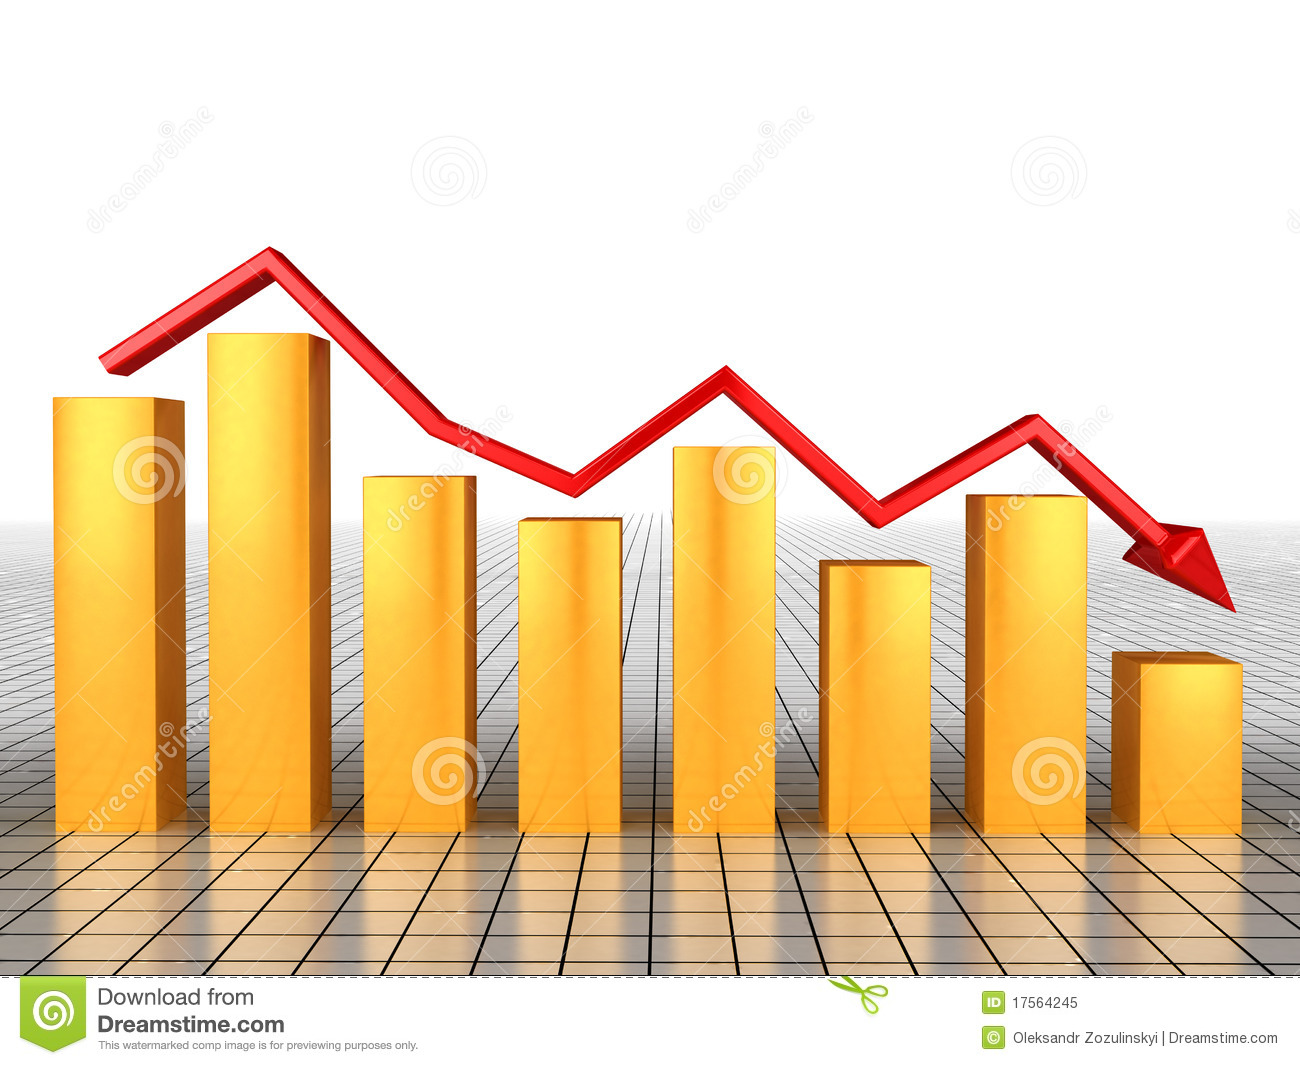 The Economic Collapse Of The Schedule №3 Royalty Free Stock Photo.